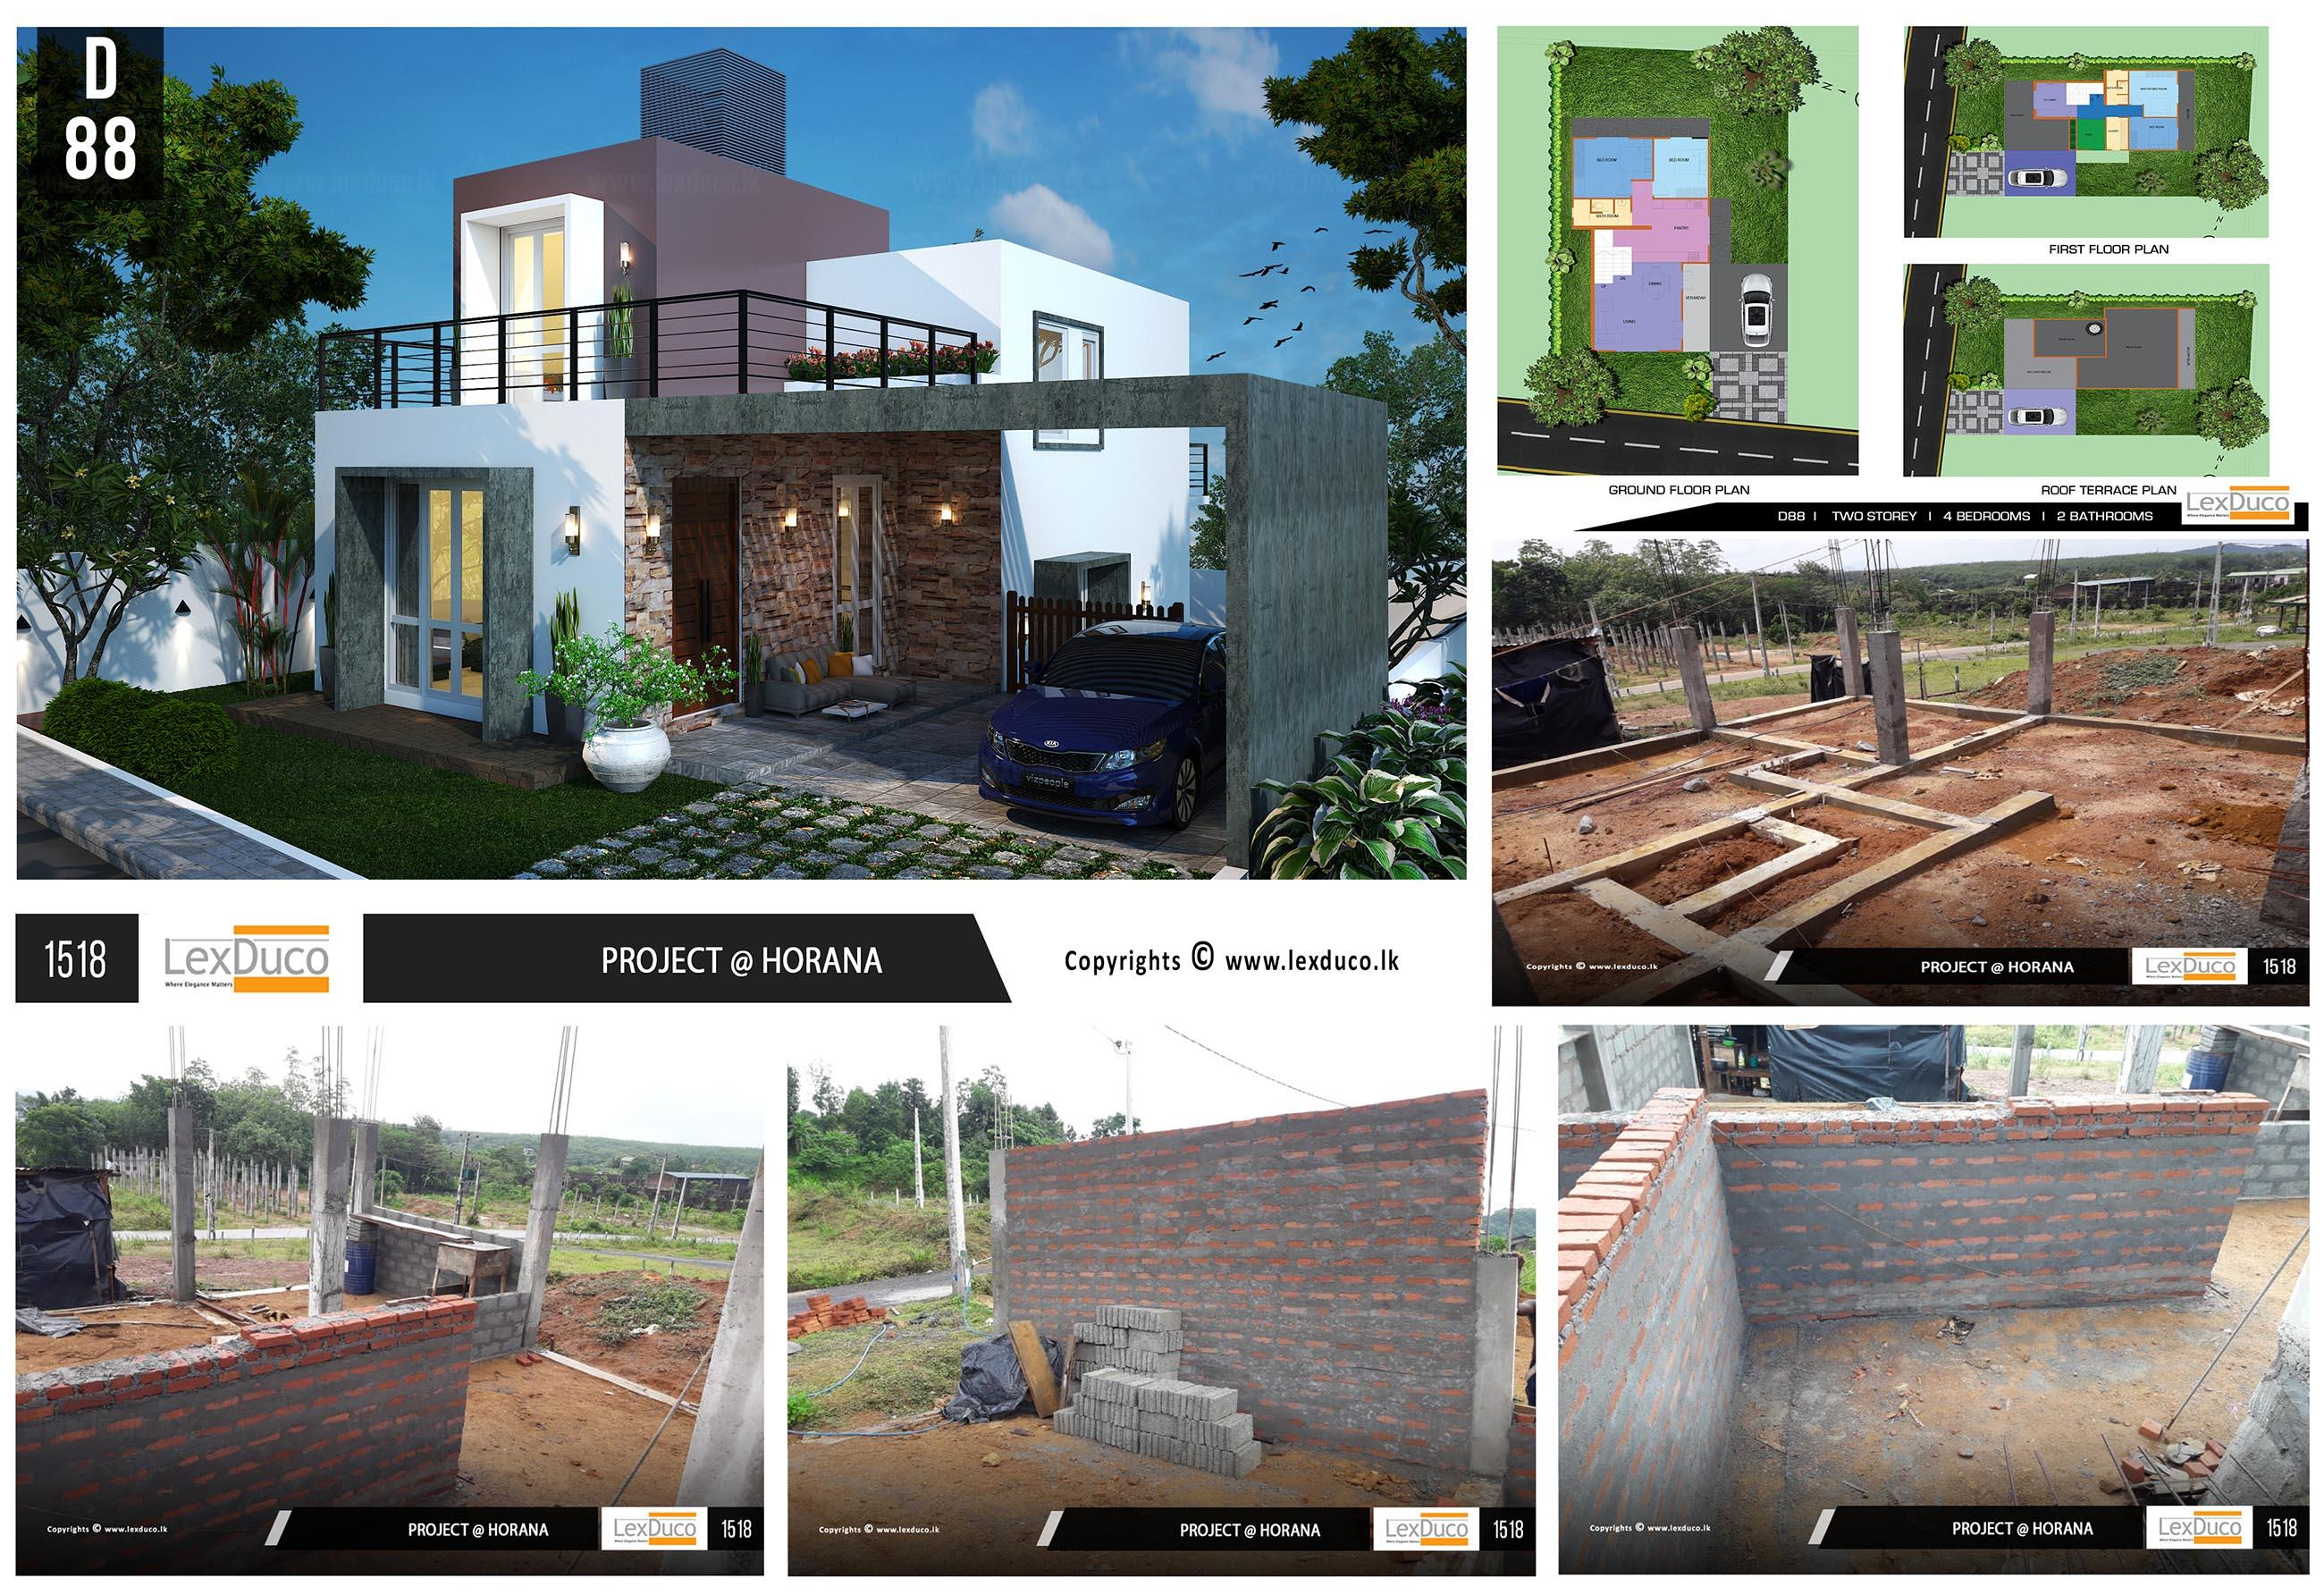 Residential Housing Project at Horana | Lex Duco